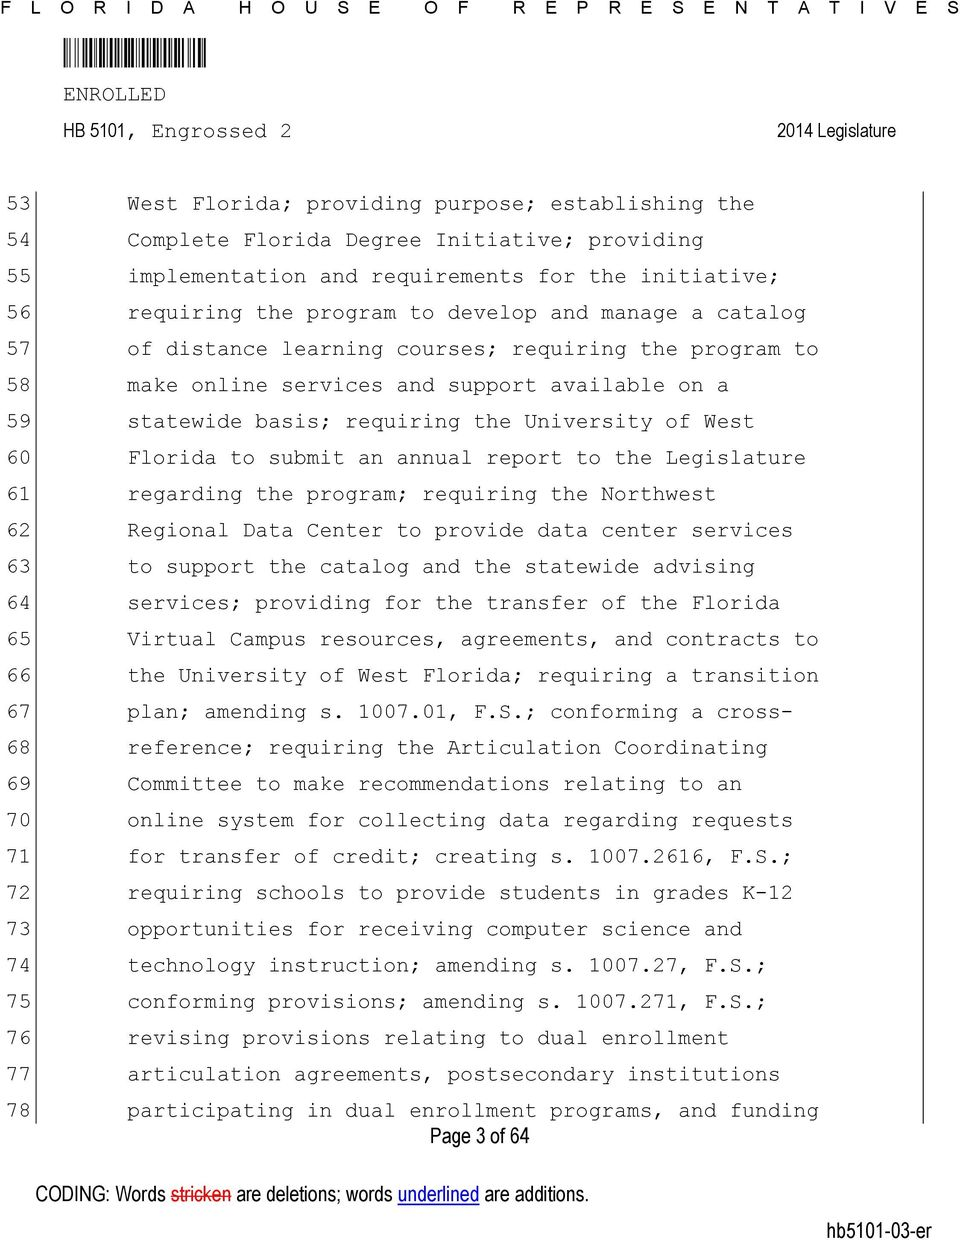 basis; requiring the University of West Florida to submit an annual report to the Legislature regarding the program; requiring the Northwest Regional Data Center to provide data center services to